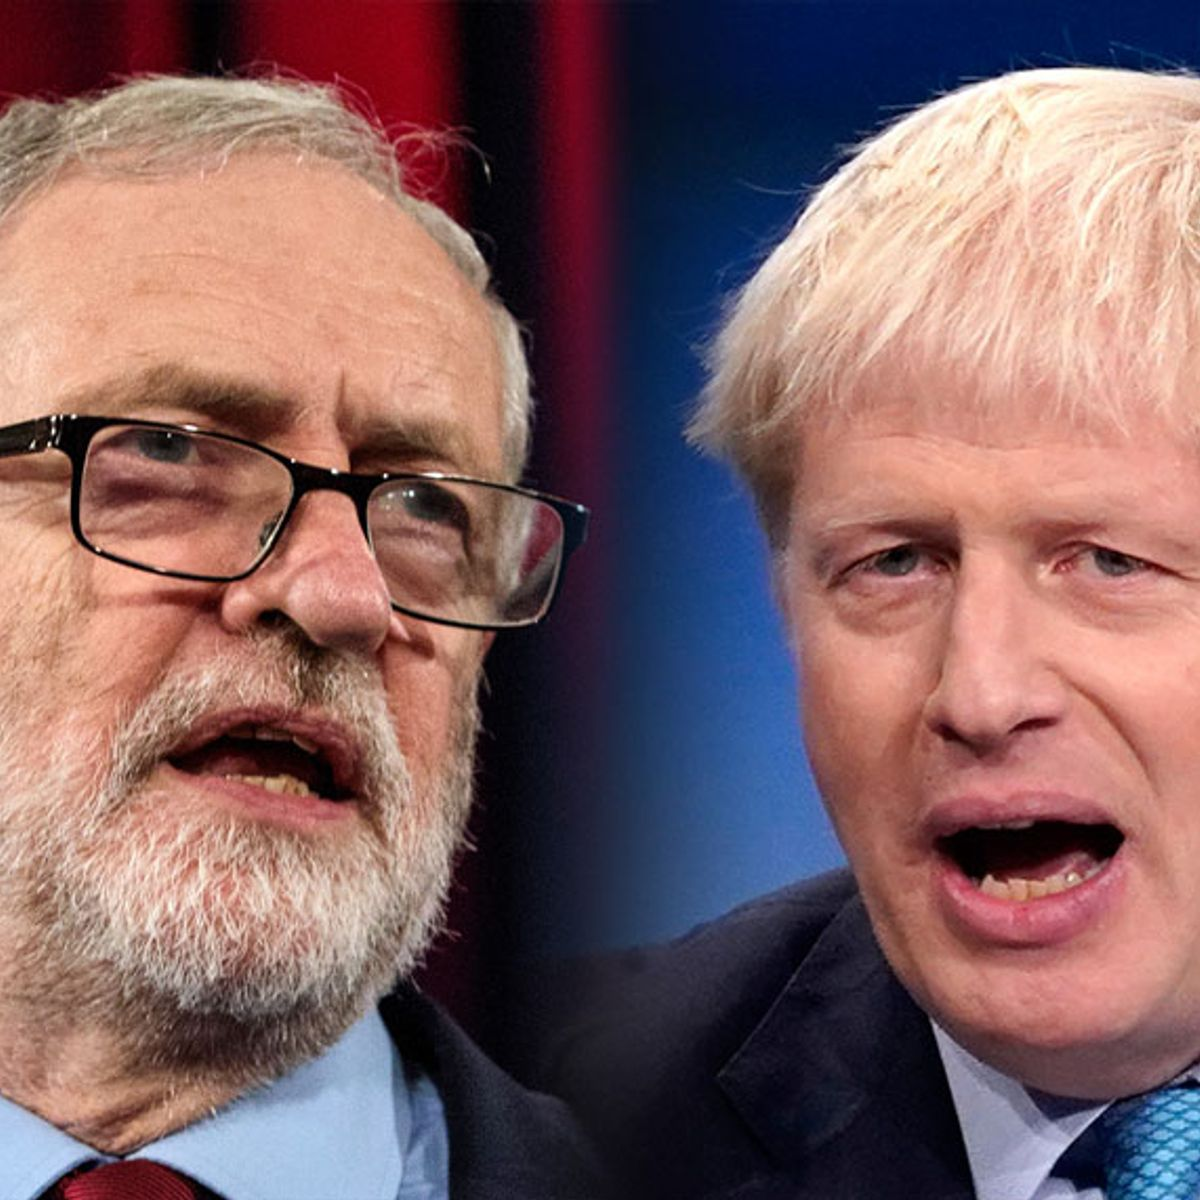 """Britain's big election, and ours: David Kogan on """"a critical turning point"""" in left history"""